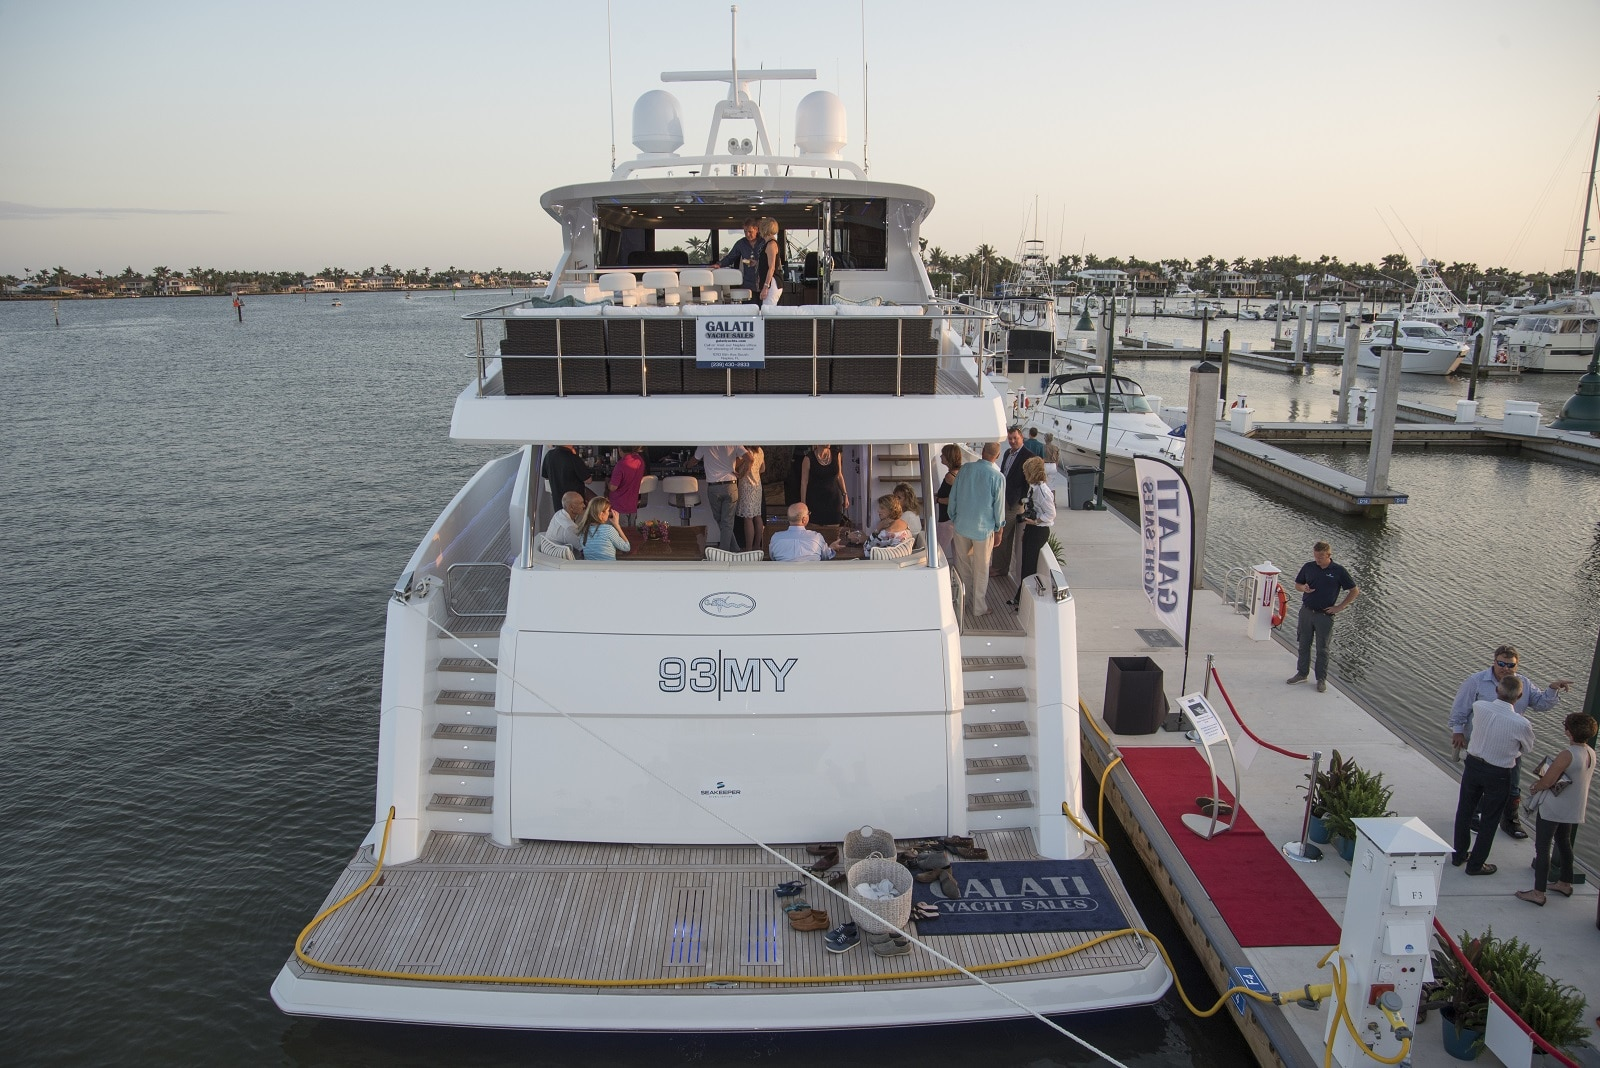 2019 Naples Dockail Party & Open House